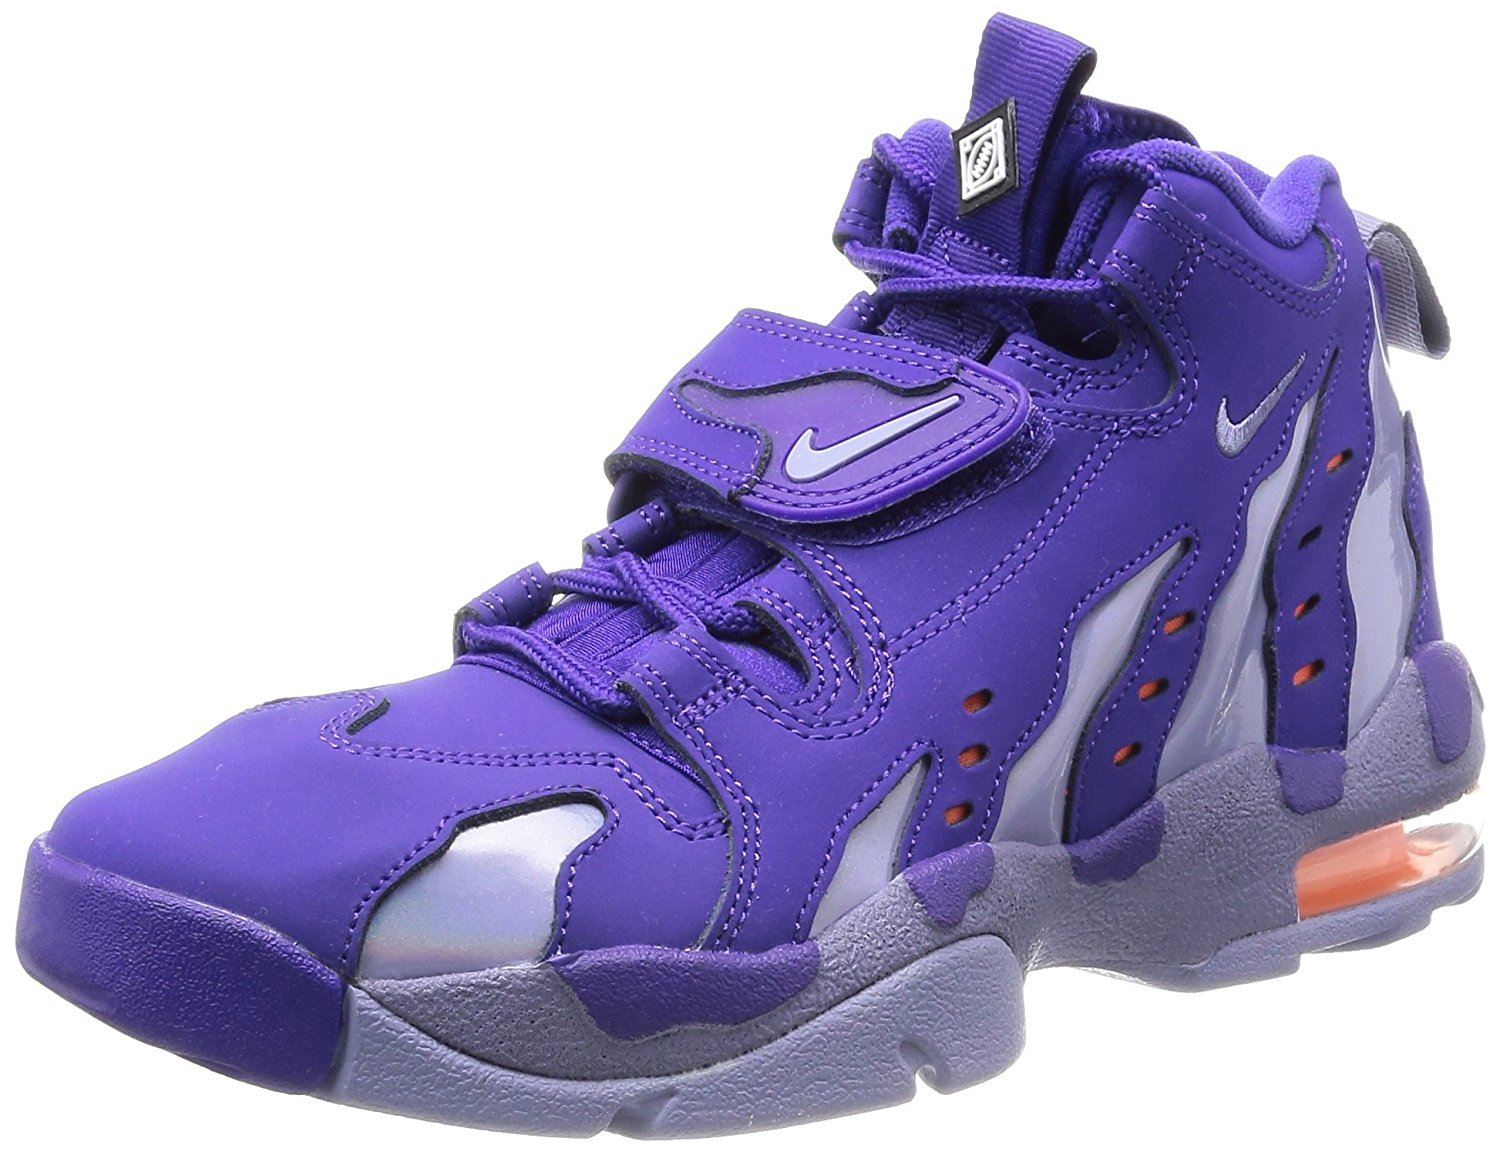 Cheap Nike Air Dt Max 96, find Nike Air Dt Max 96 deals on line at